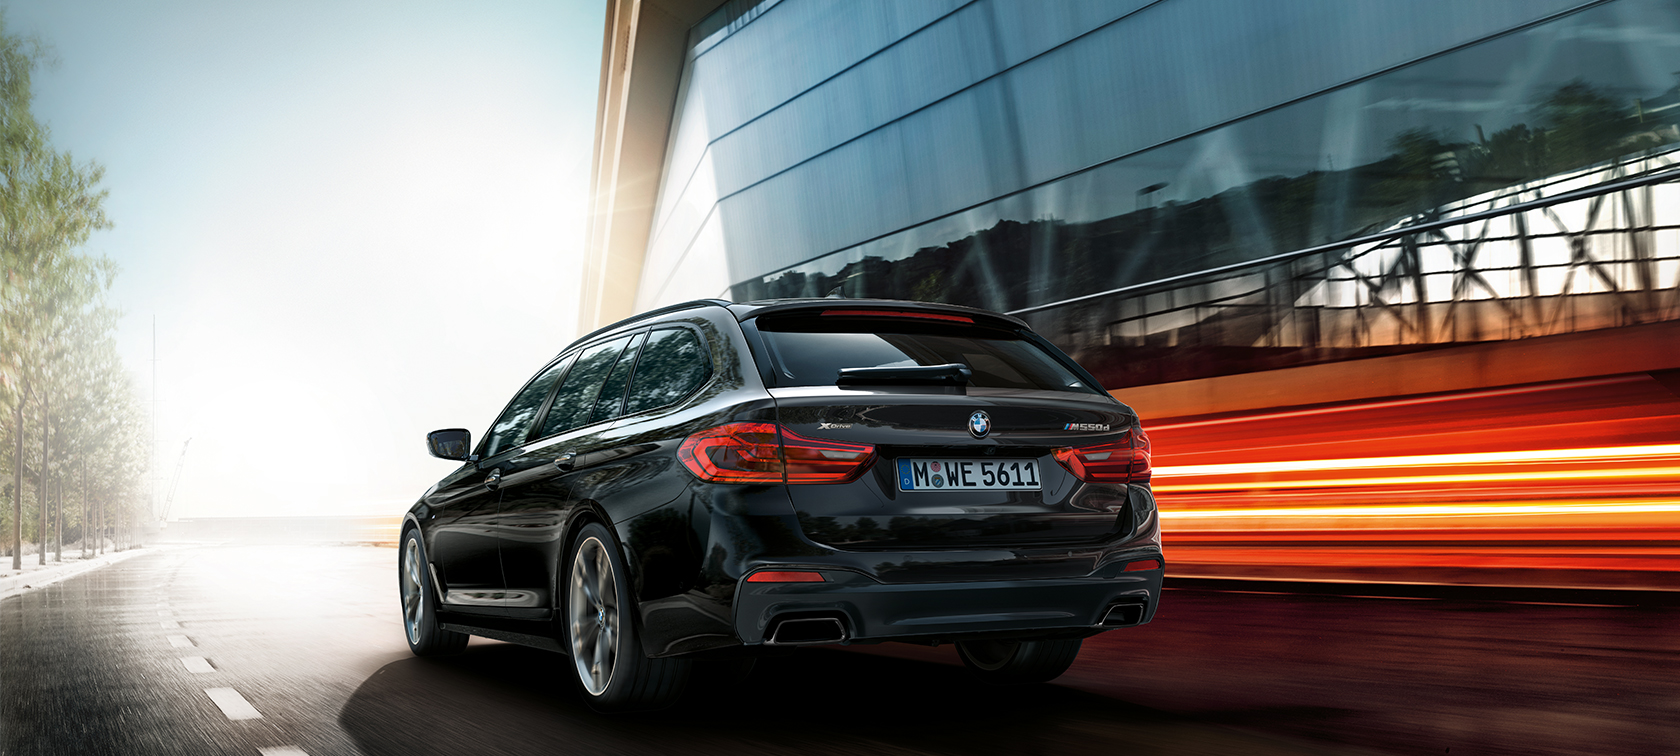 BMW M550d xDrive Туринг G31 Azurite Black metallic три четвърти изглед отзад BMW M550d Туринг